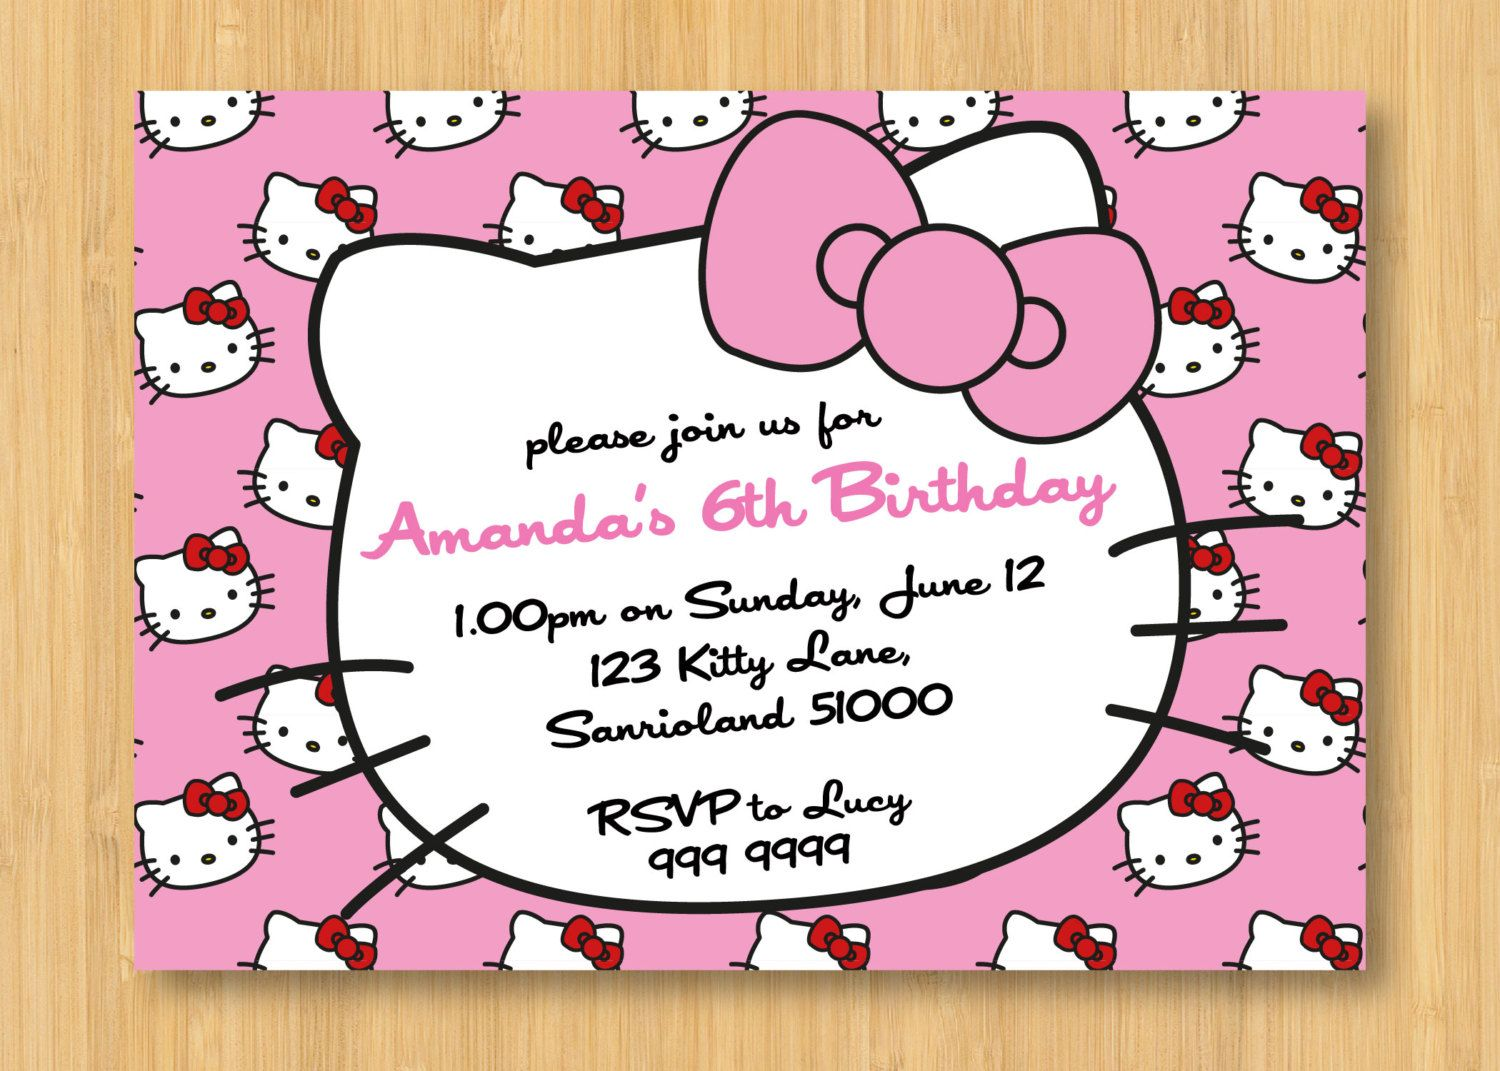 hello kitty birthday invitation template free ; 8fcca8a2bd628bb94c6ad55e60af0609